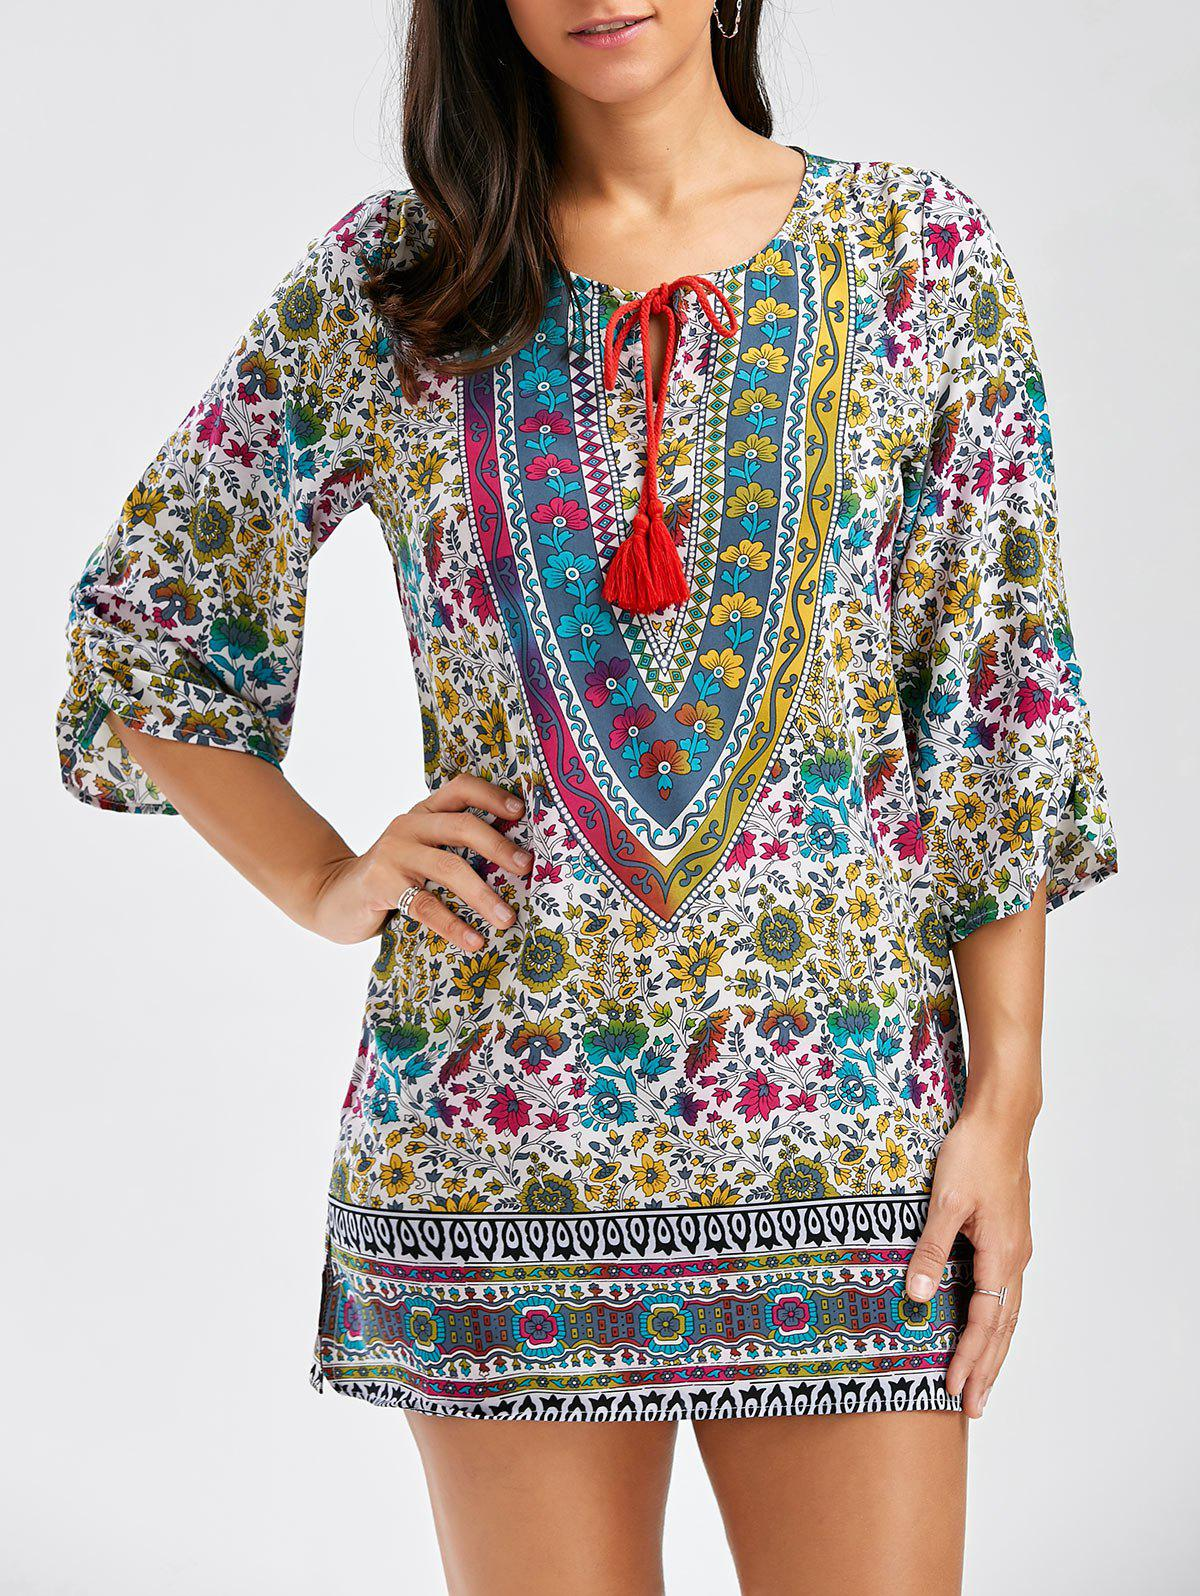 Vintage Style V-Neck Full Print 3/4 Sleeve Women's Dress - COLORMIX L